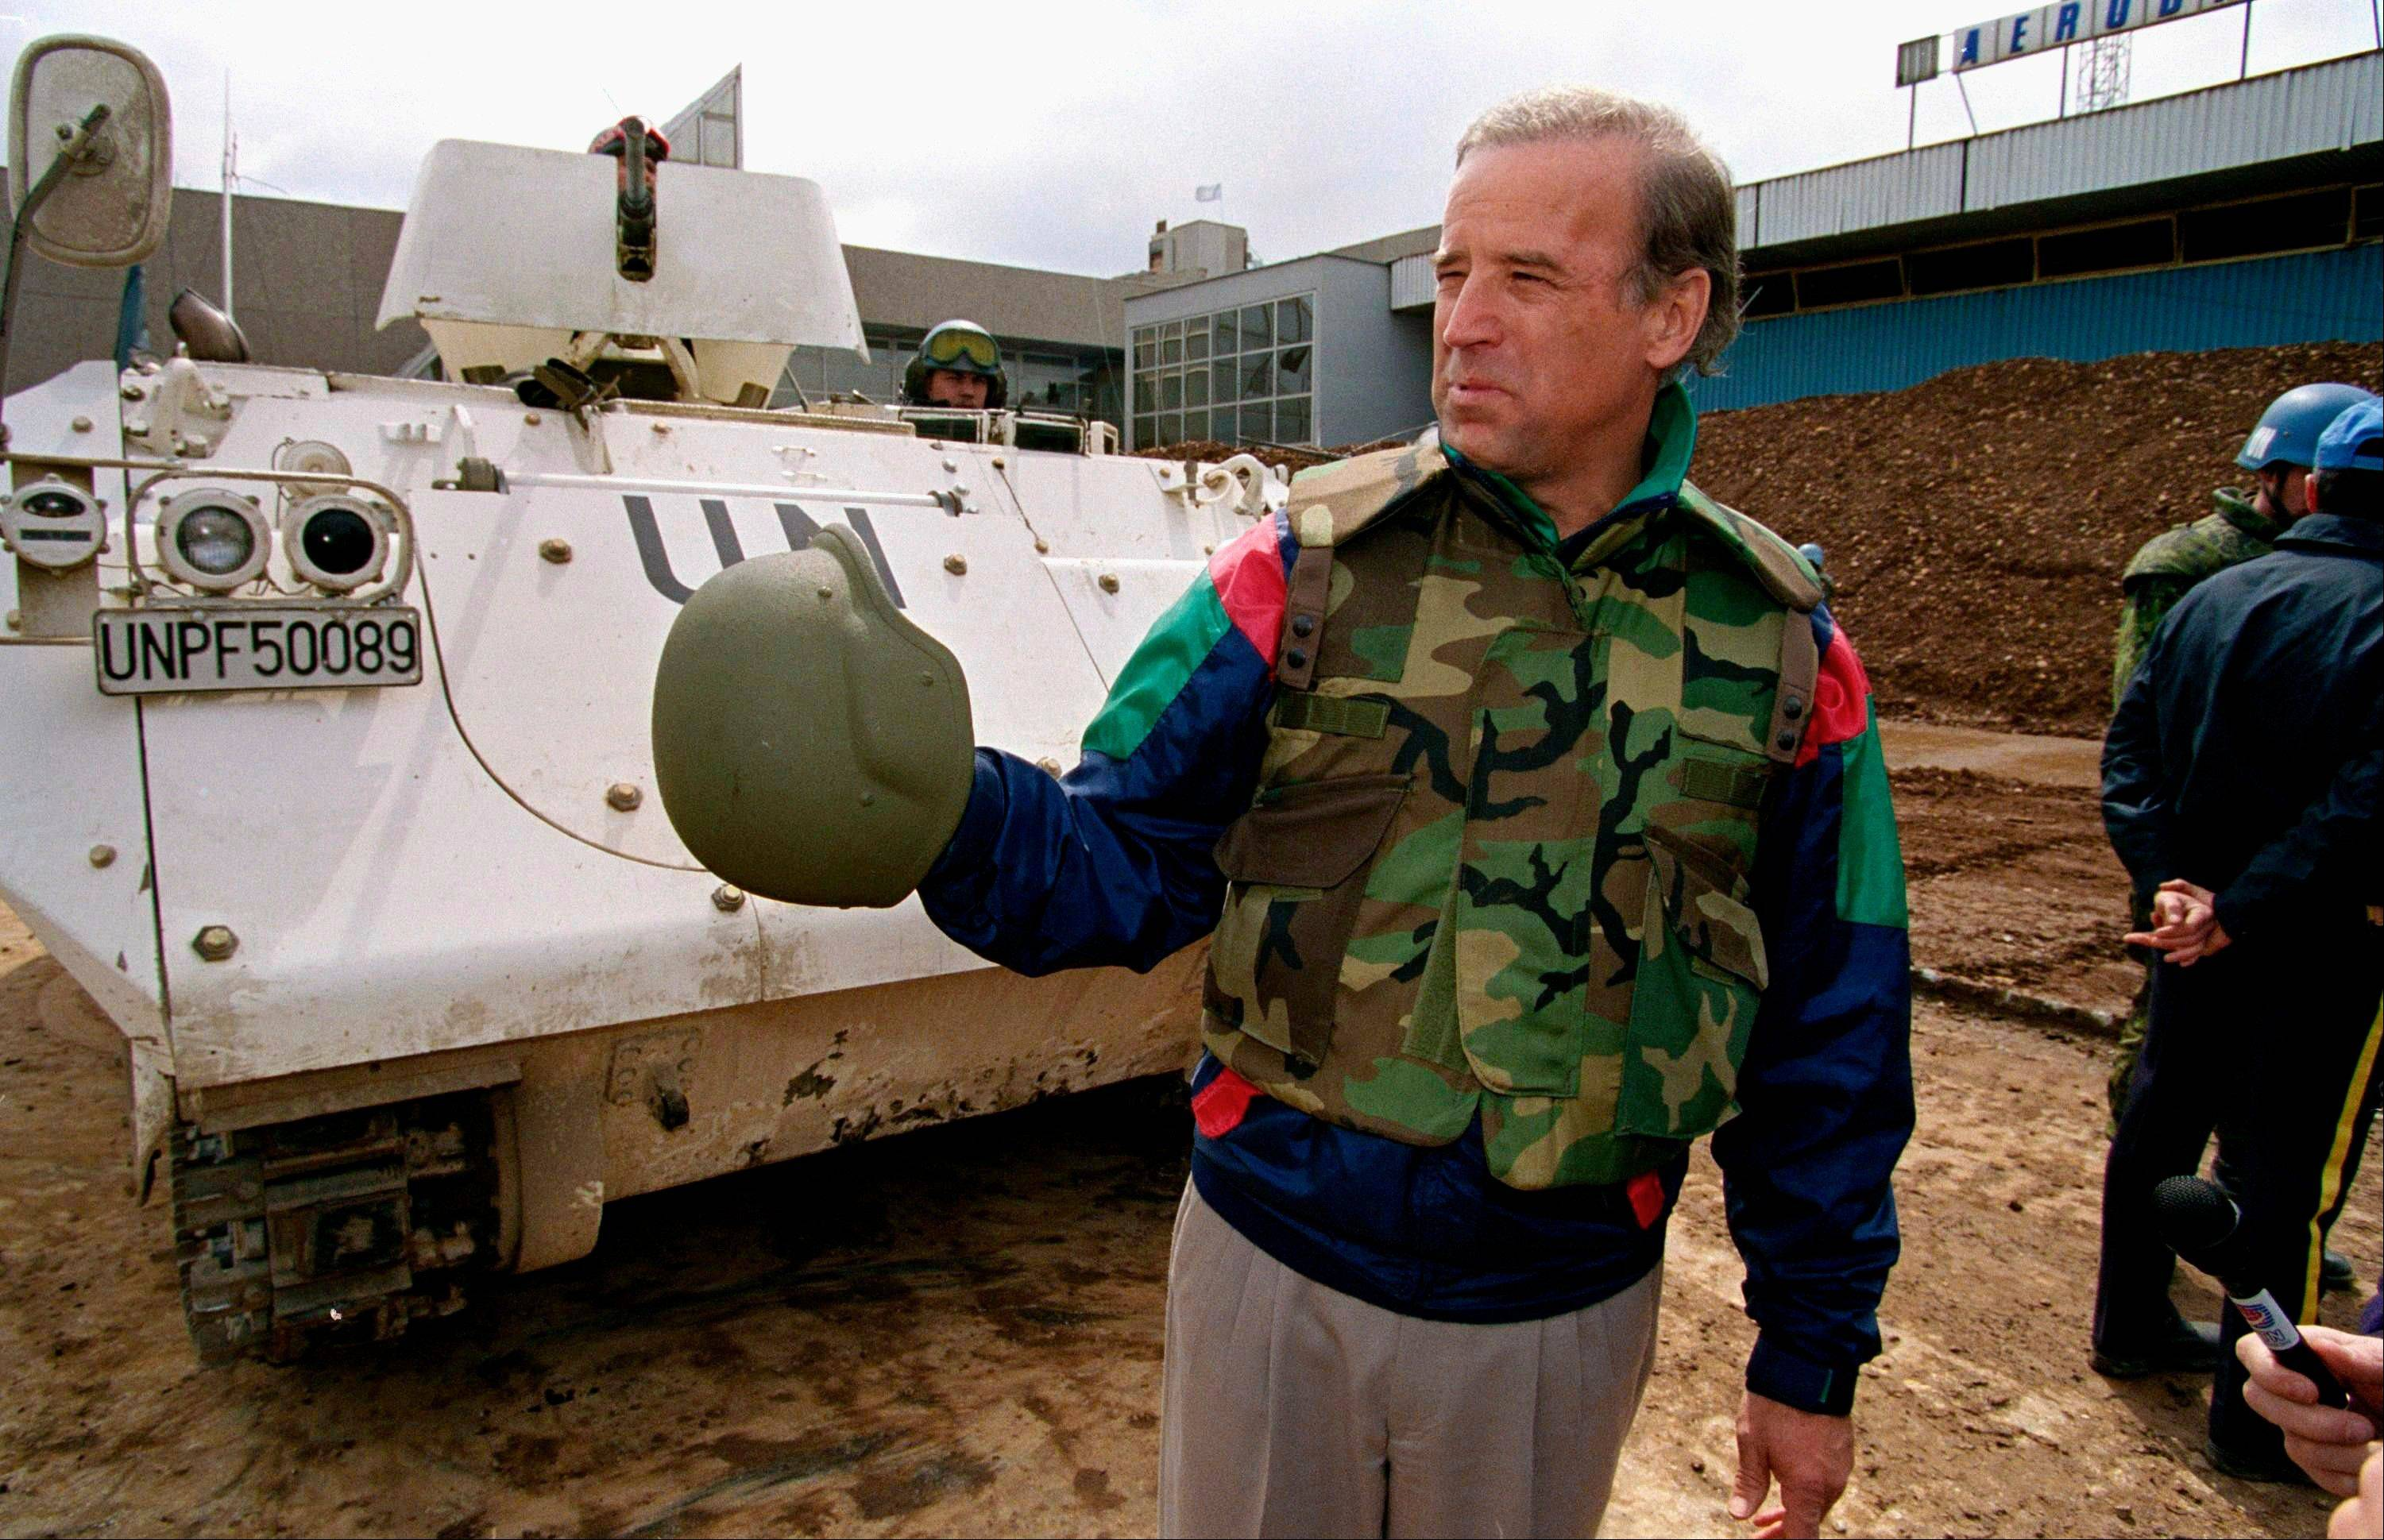 In this April 9, 1993, file photo then-Sen. Joe Biden, D-Del. stands in front of a Danish armored personnel carrier at the UN-controlled Sarajevo Airport, making a statement about his trip to the besieged Bosnian capital. In May, after Joe Biden tripped up his boss by voicing support for same-sex marriage while the president remained on the fence, there was speculation about whether the remarks were spontaneous or deliberate. But to those who know Biden, there was no doubt. He was just speaking his mind.